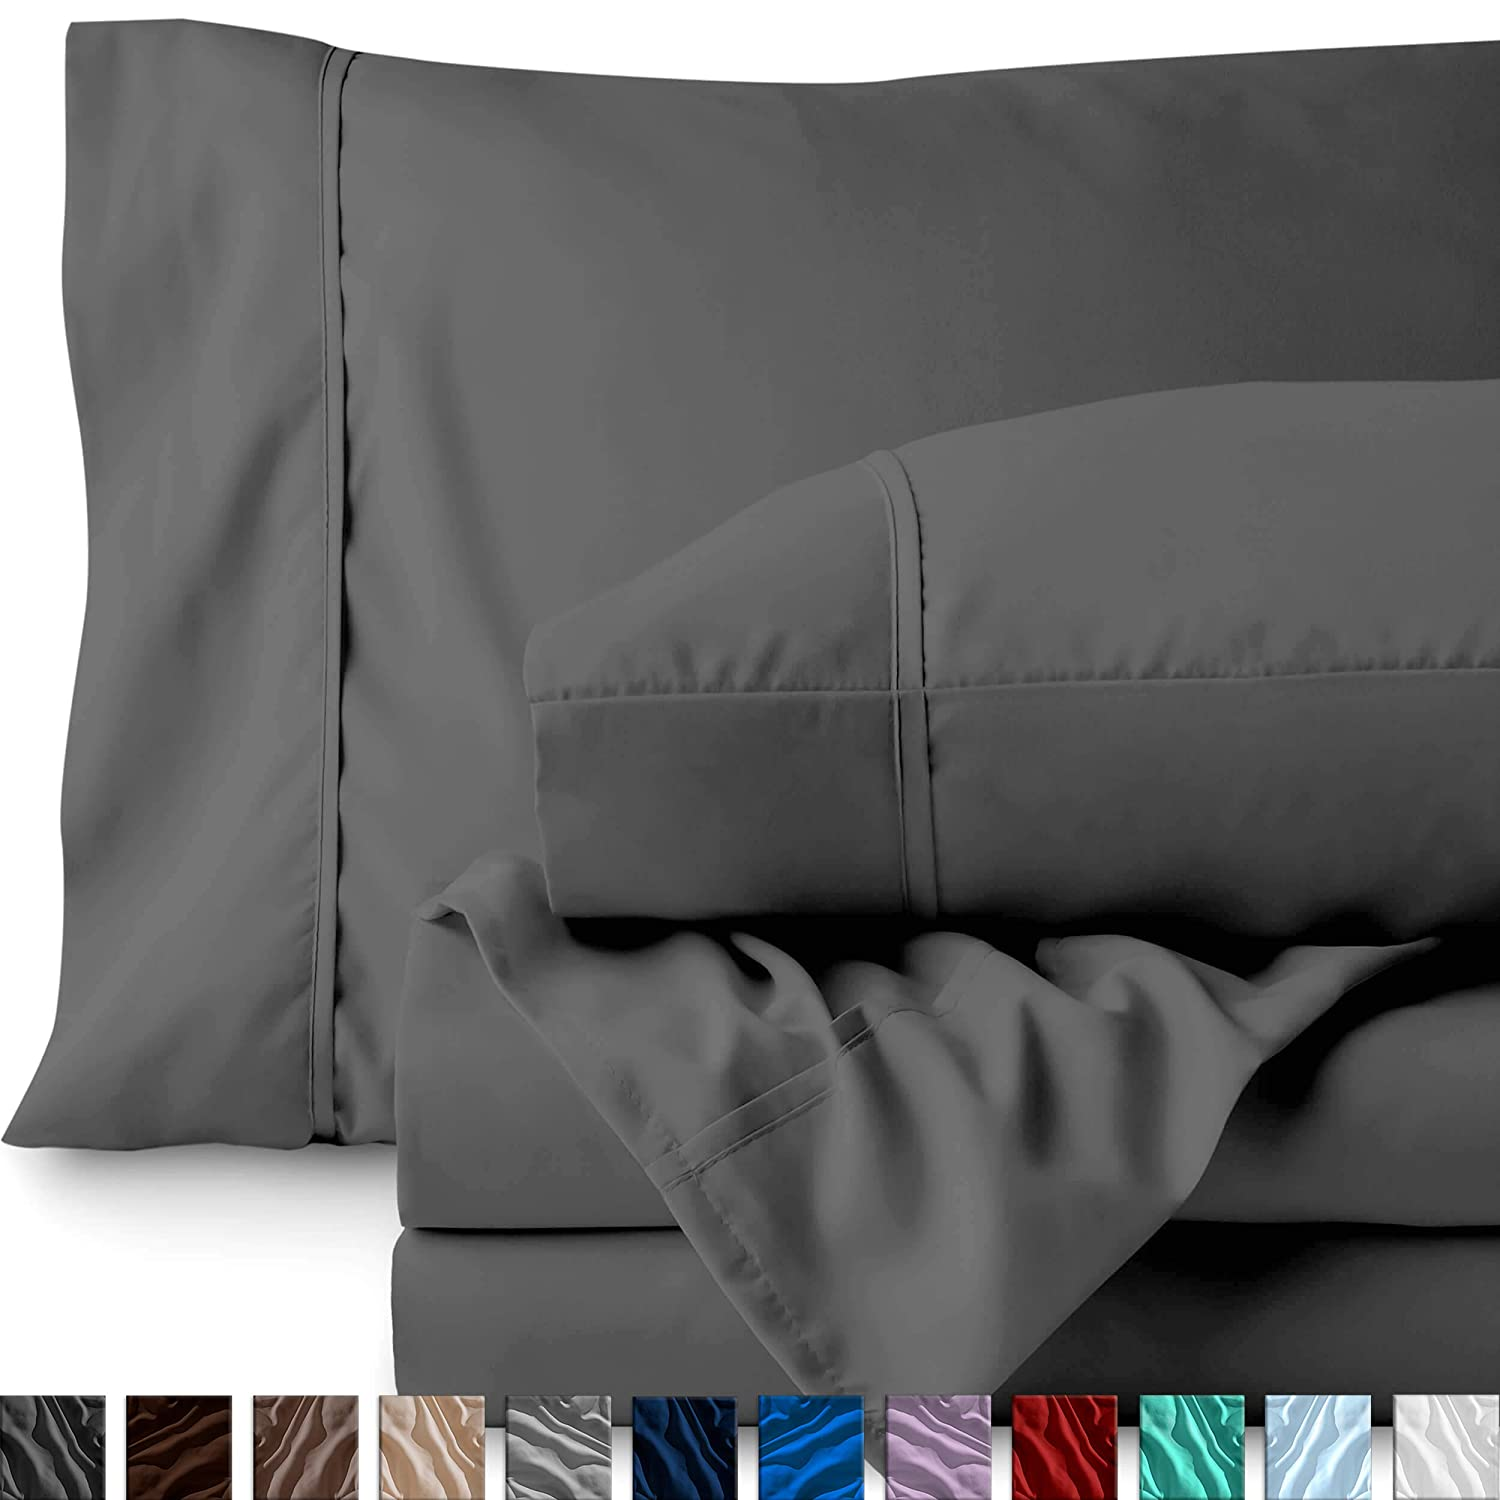 Bare Home Full XL Sheet Set - College Dorm Size - Premium 1800 Ultra-Soft Microfiber Sheets Full Extra Long - Double Brushed - Hypoallergenic - Wrinkle Resistant (Full XL, Grey)